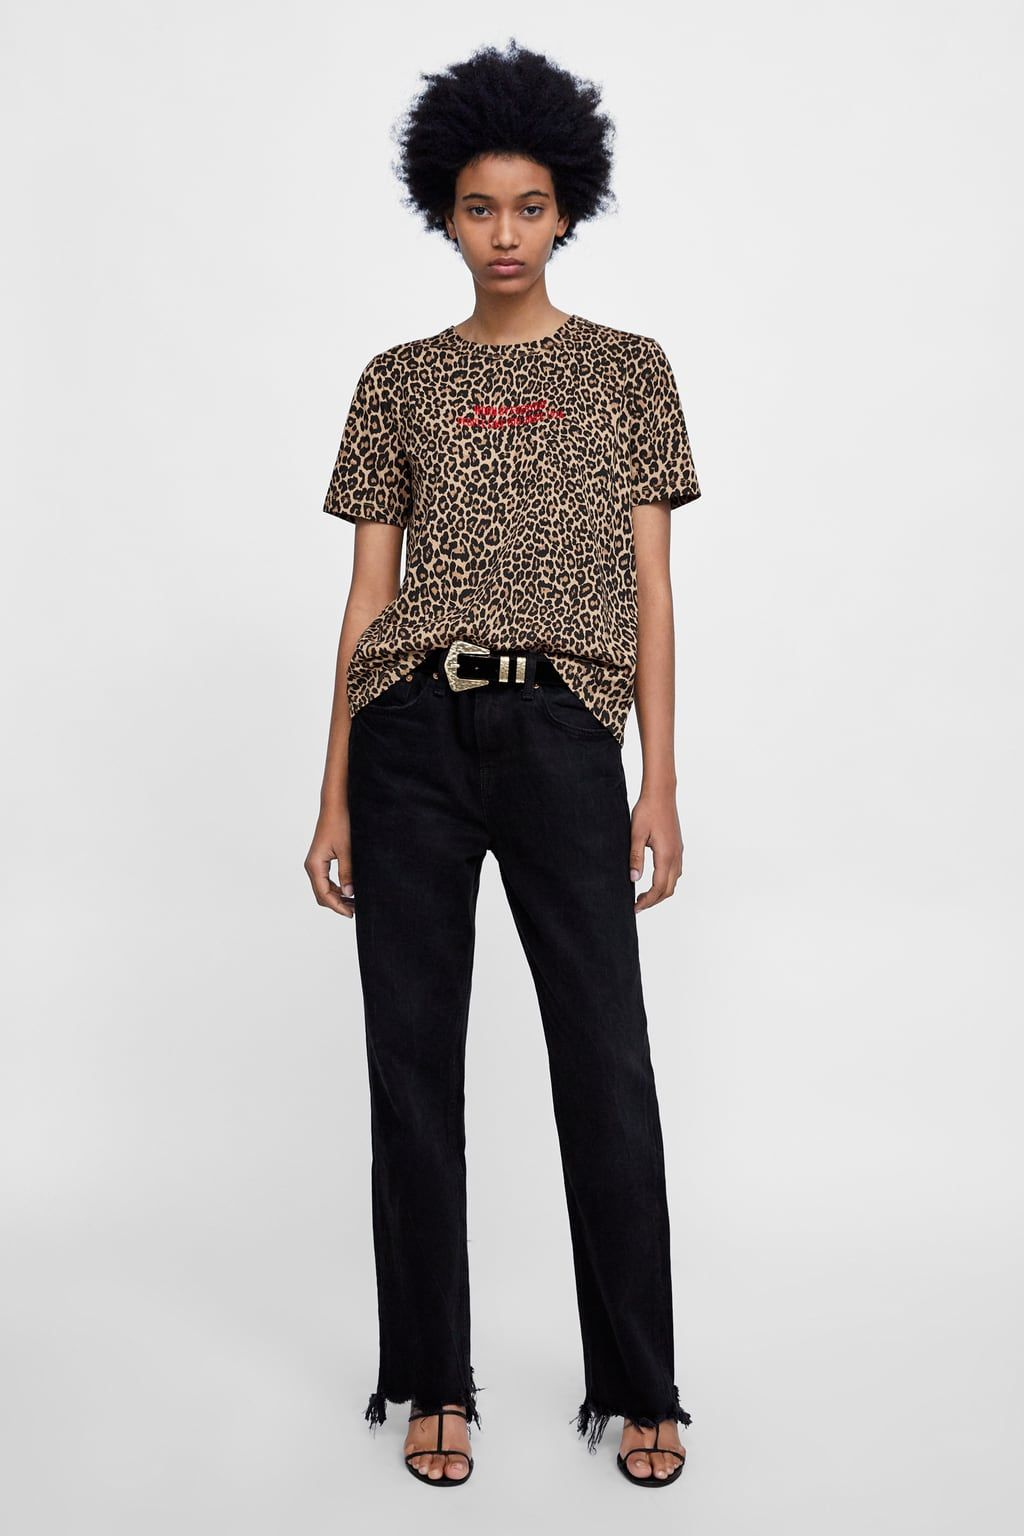 d79a468c9df3 CAMISETA ESTAMPADO ANIMAL in 2019 | Clothes I like | Animal print t ...